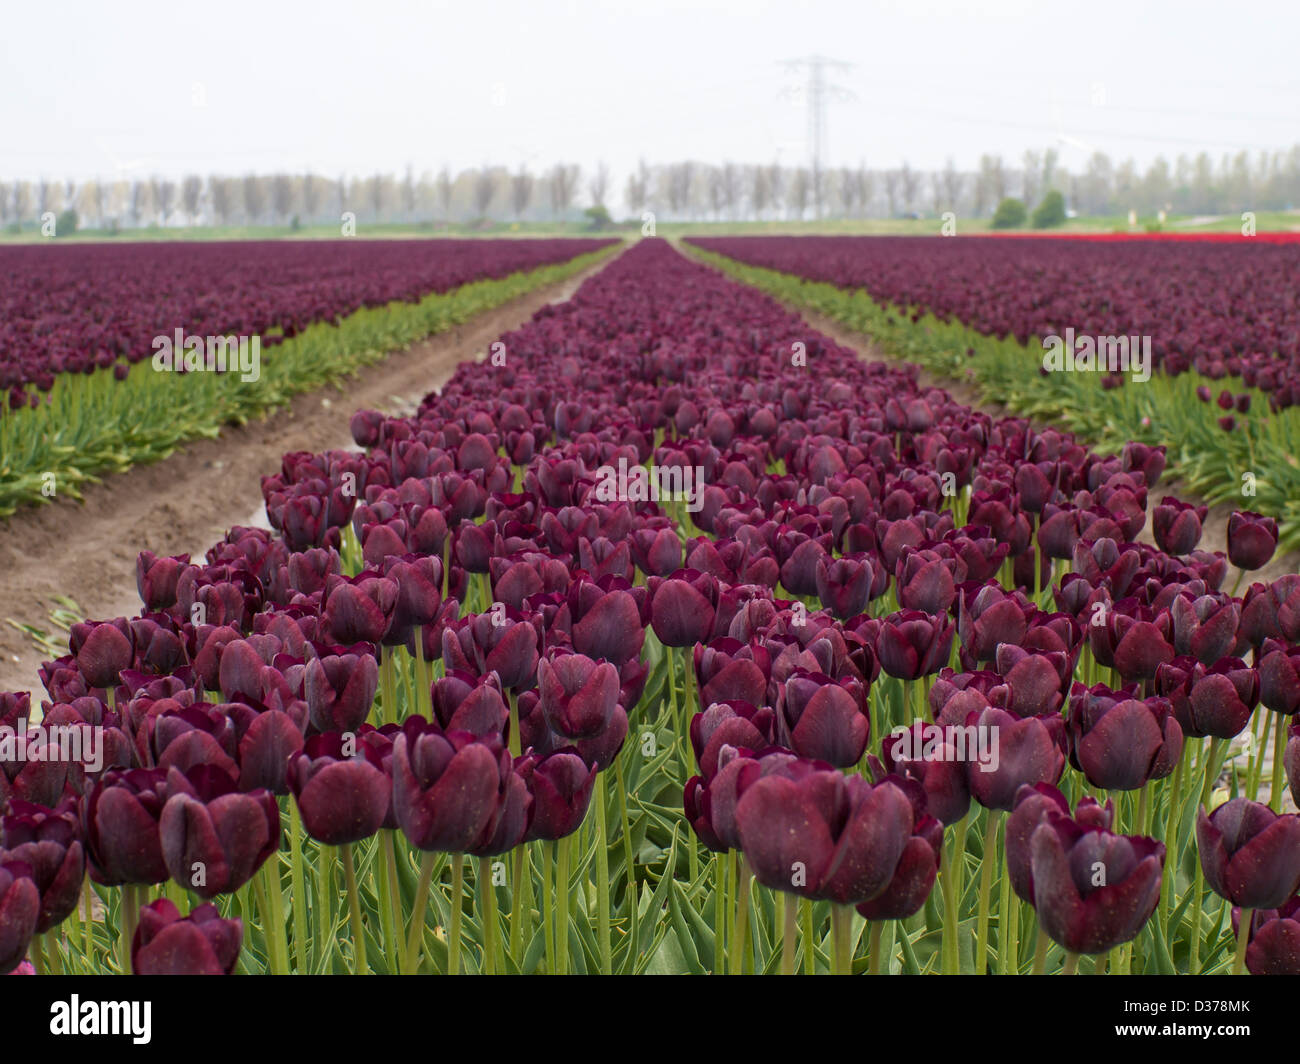 Agriculture Flowers Trees Spring Purple Crop Stock Photos